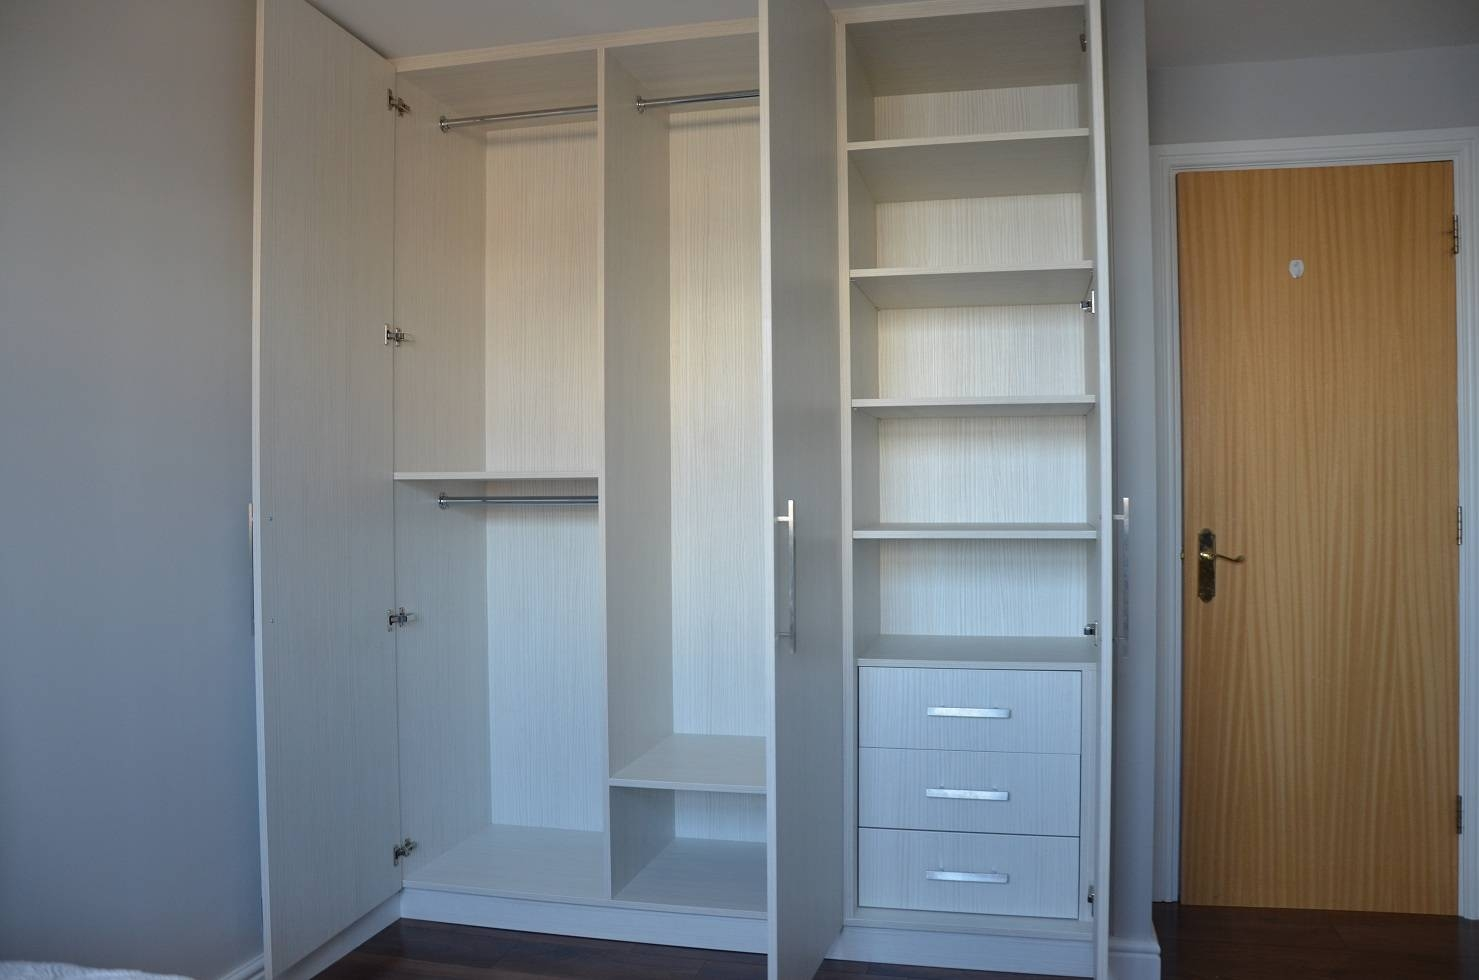 Hacienda White 3 Doors, Canary Wharf E14 pertaining to 3 Door Wardrobe With Drawers and Shelves (Image 14 of 30)